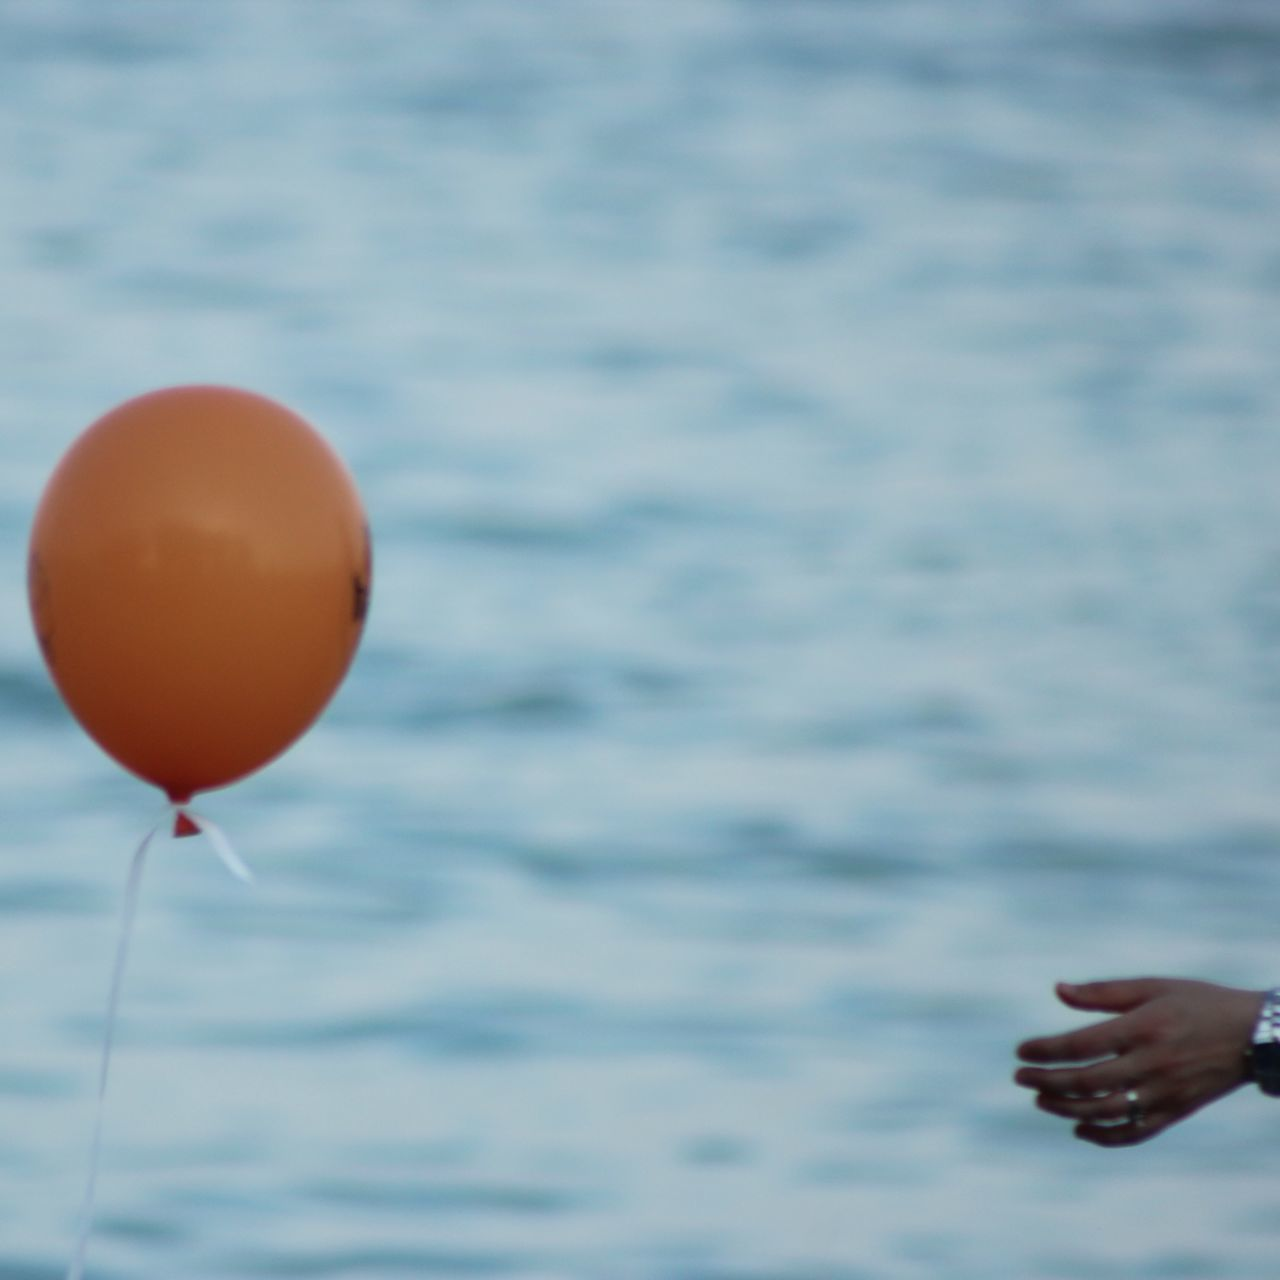 water, outdoors, nature, sea, human hand, day, human body part, balloon, real people, one person, close-up